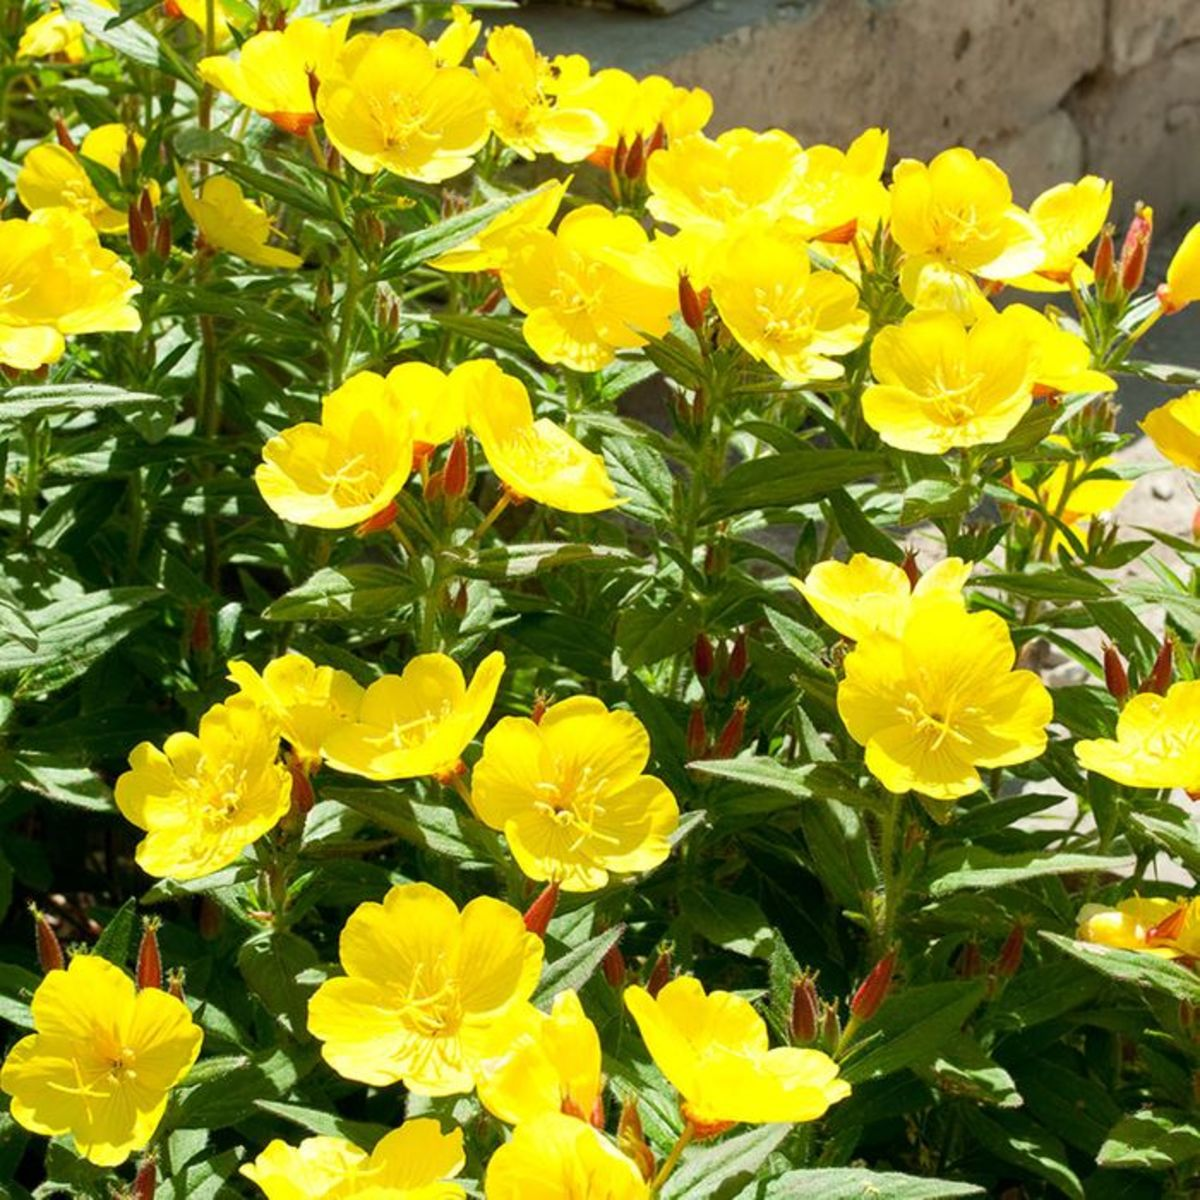 These yellow evening primrose flowers are often called sundrops.